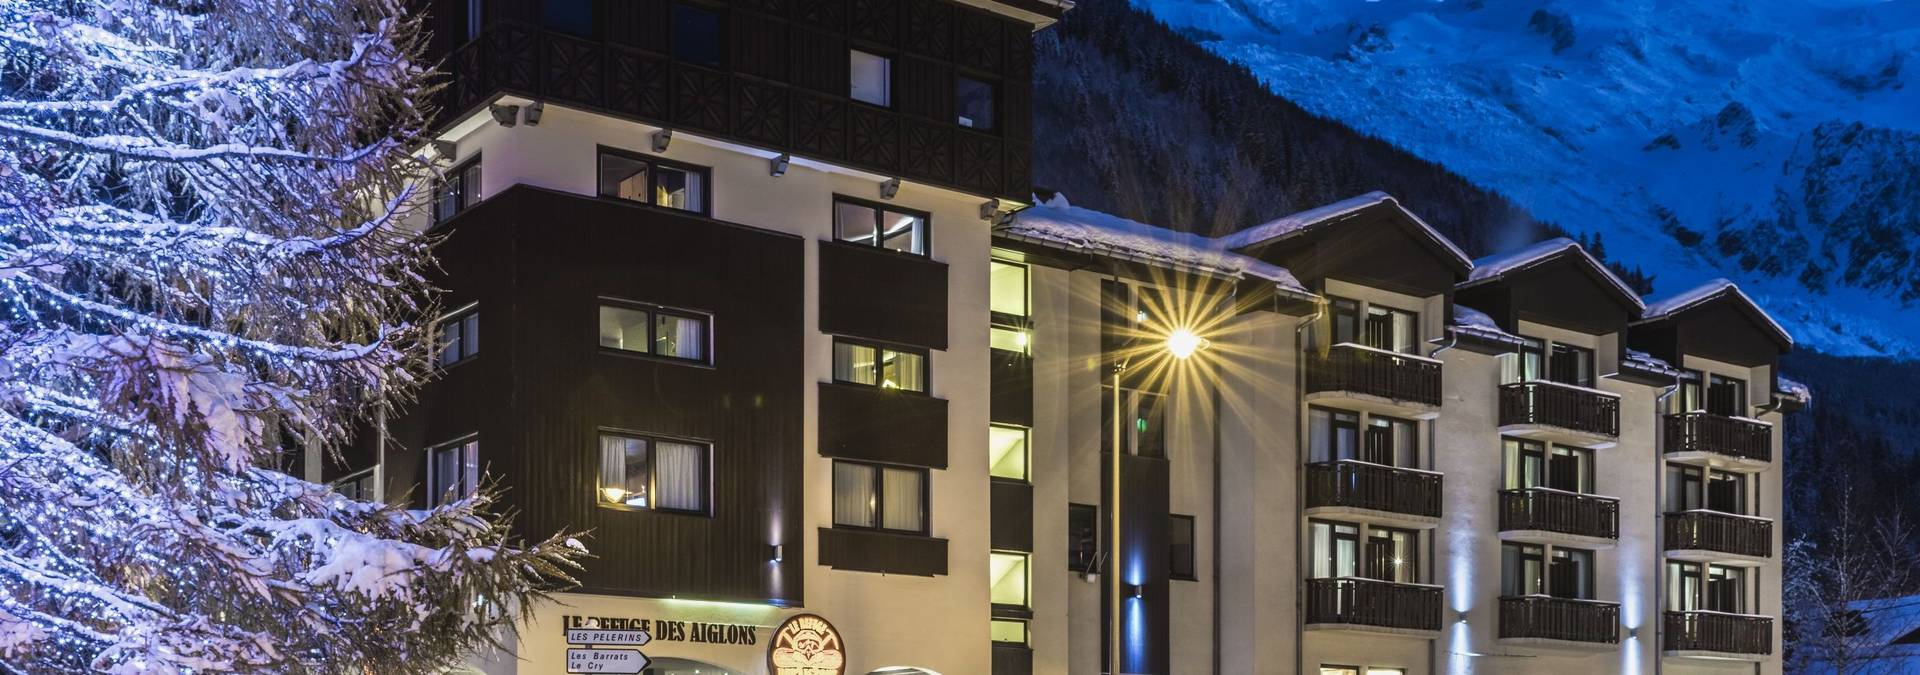 weekend in chamonix hotel